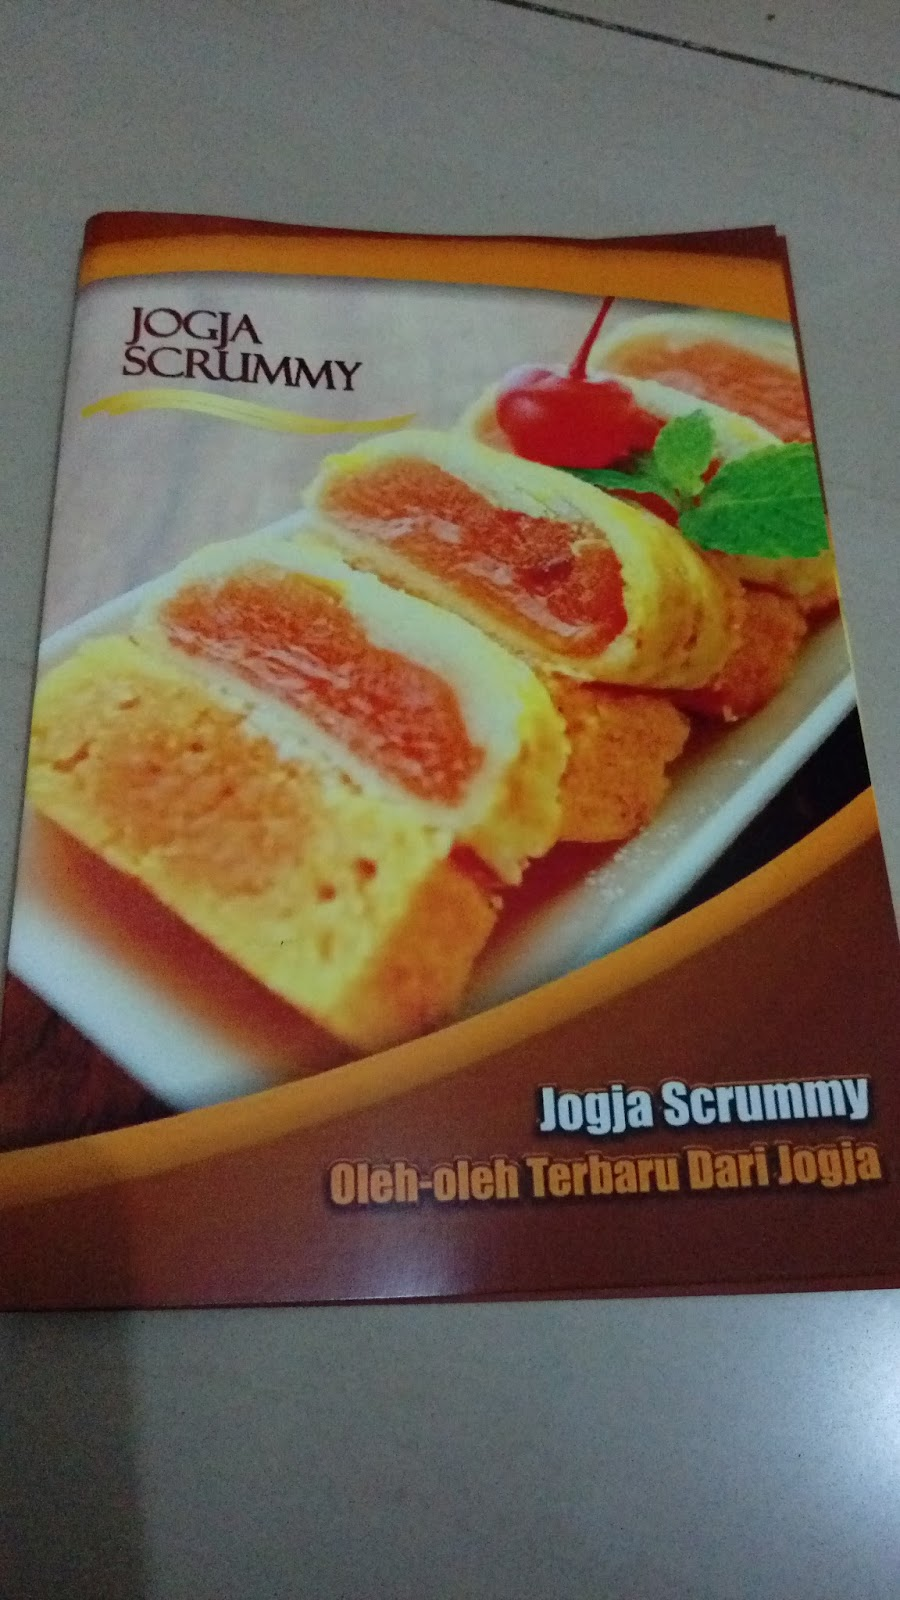 Life Is For Sharing And Giving Xplore Jogja Jogja Scrummy